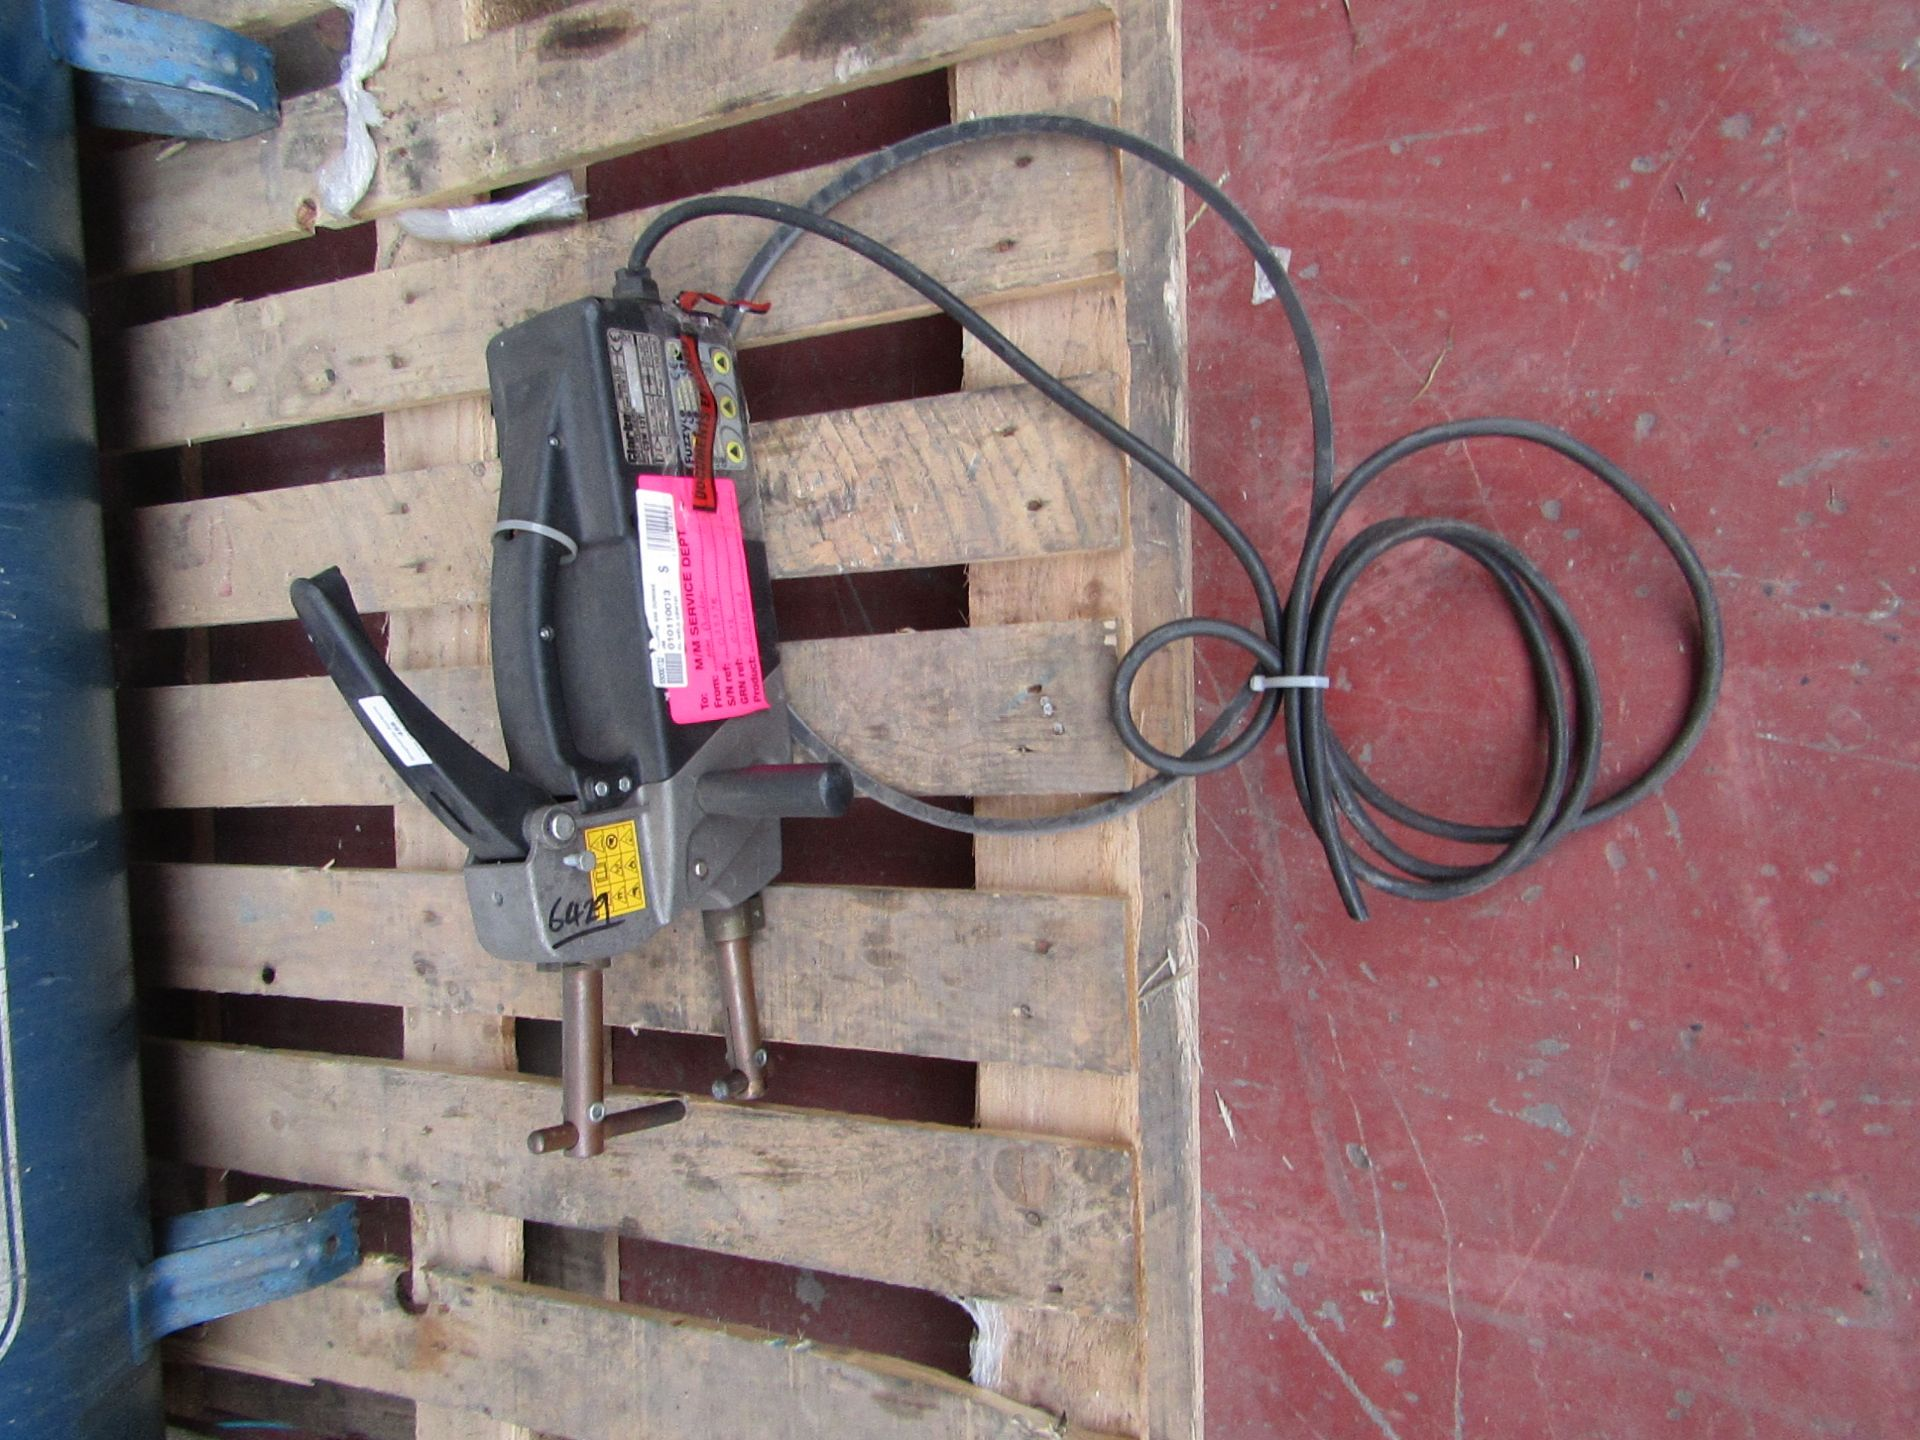 Lot 456 - CLARKE WELD CSW13T 230V £549.00 6429 This lot is a Machine Mart product which is raw and